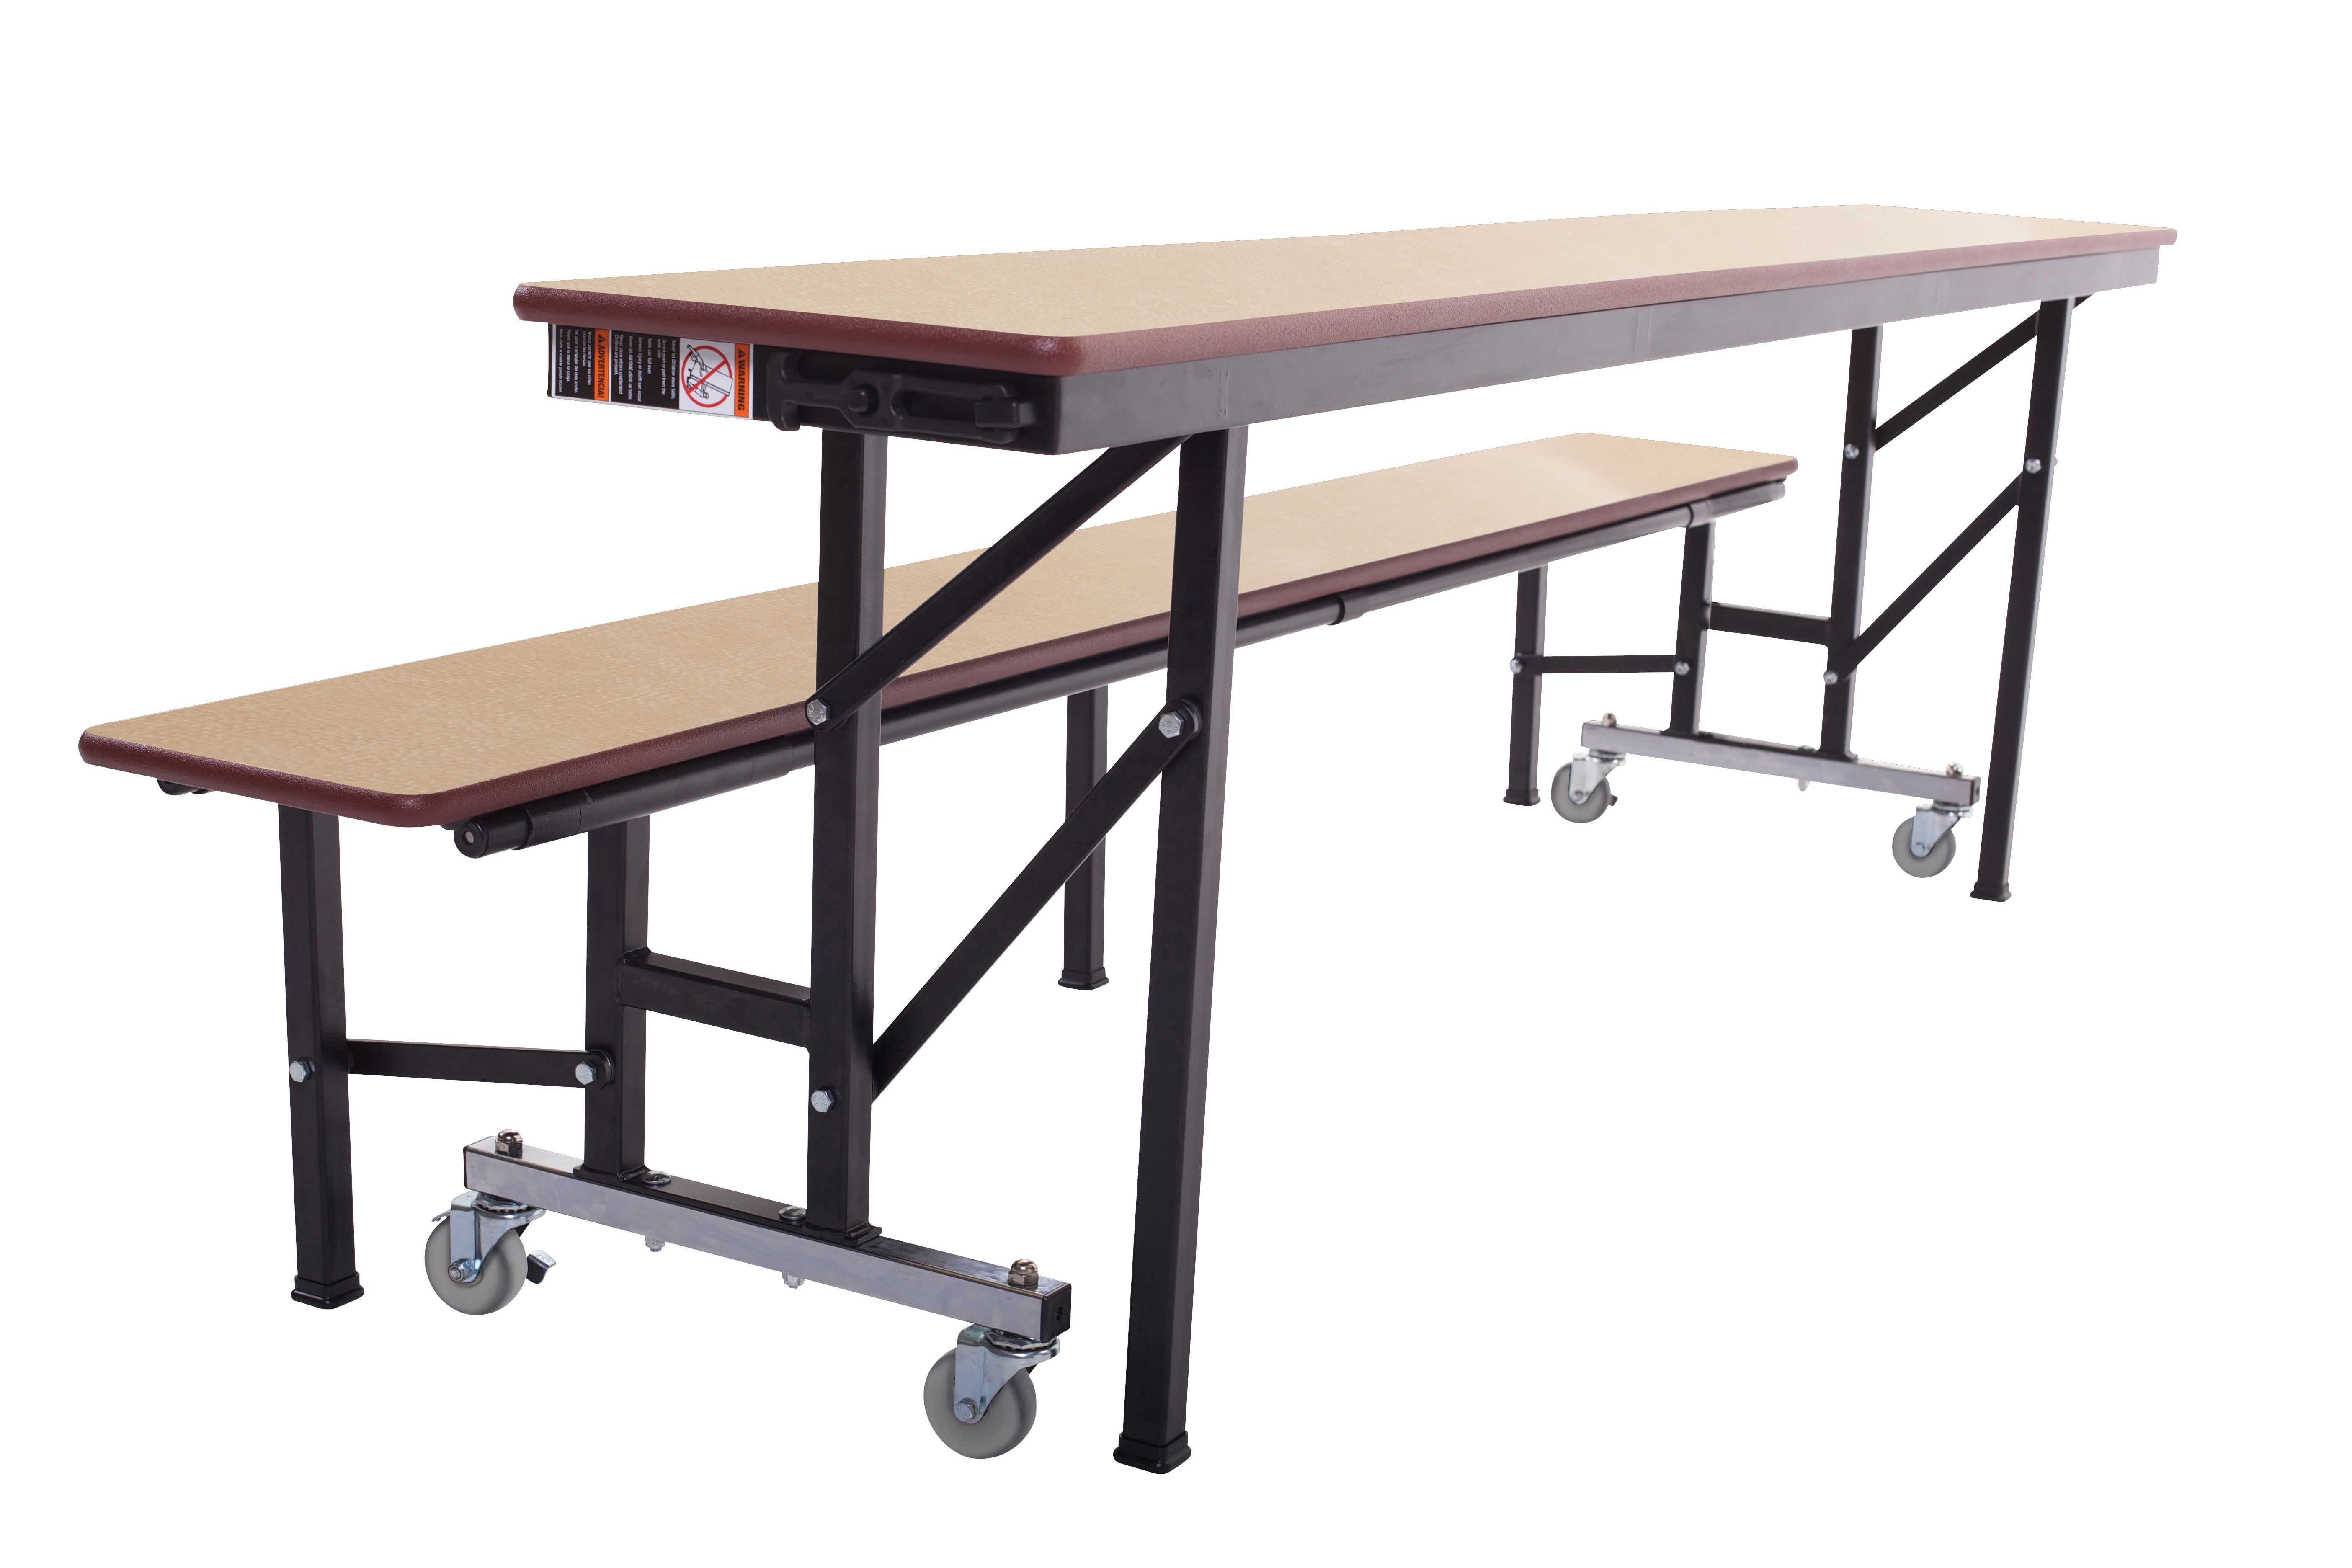 The Mobile Convertible Bench Is A Education Facility 39 S Best Piece Of Furniture Cafeteria Table Table Sizes Bench Table